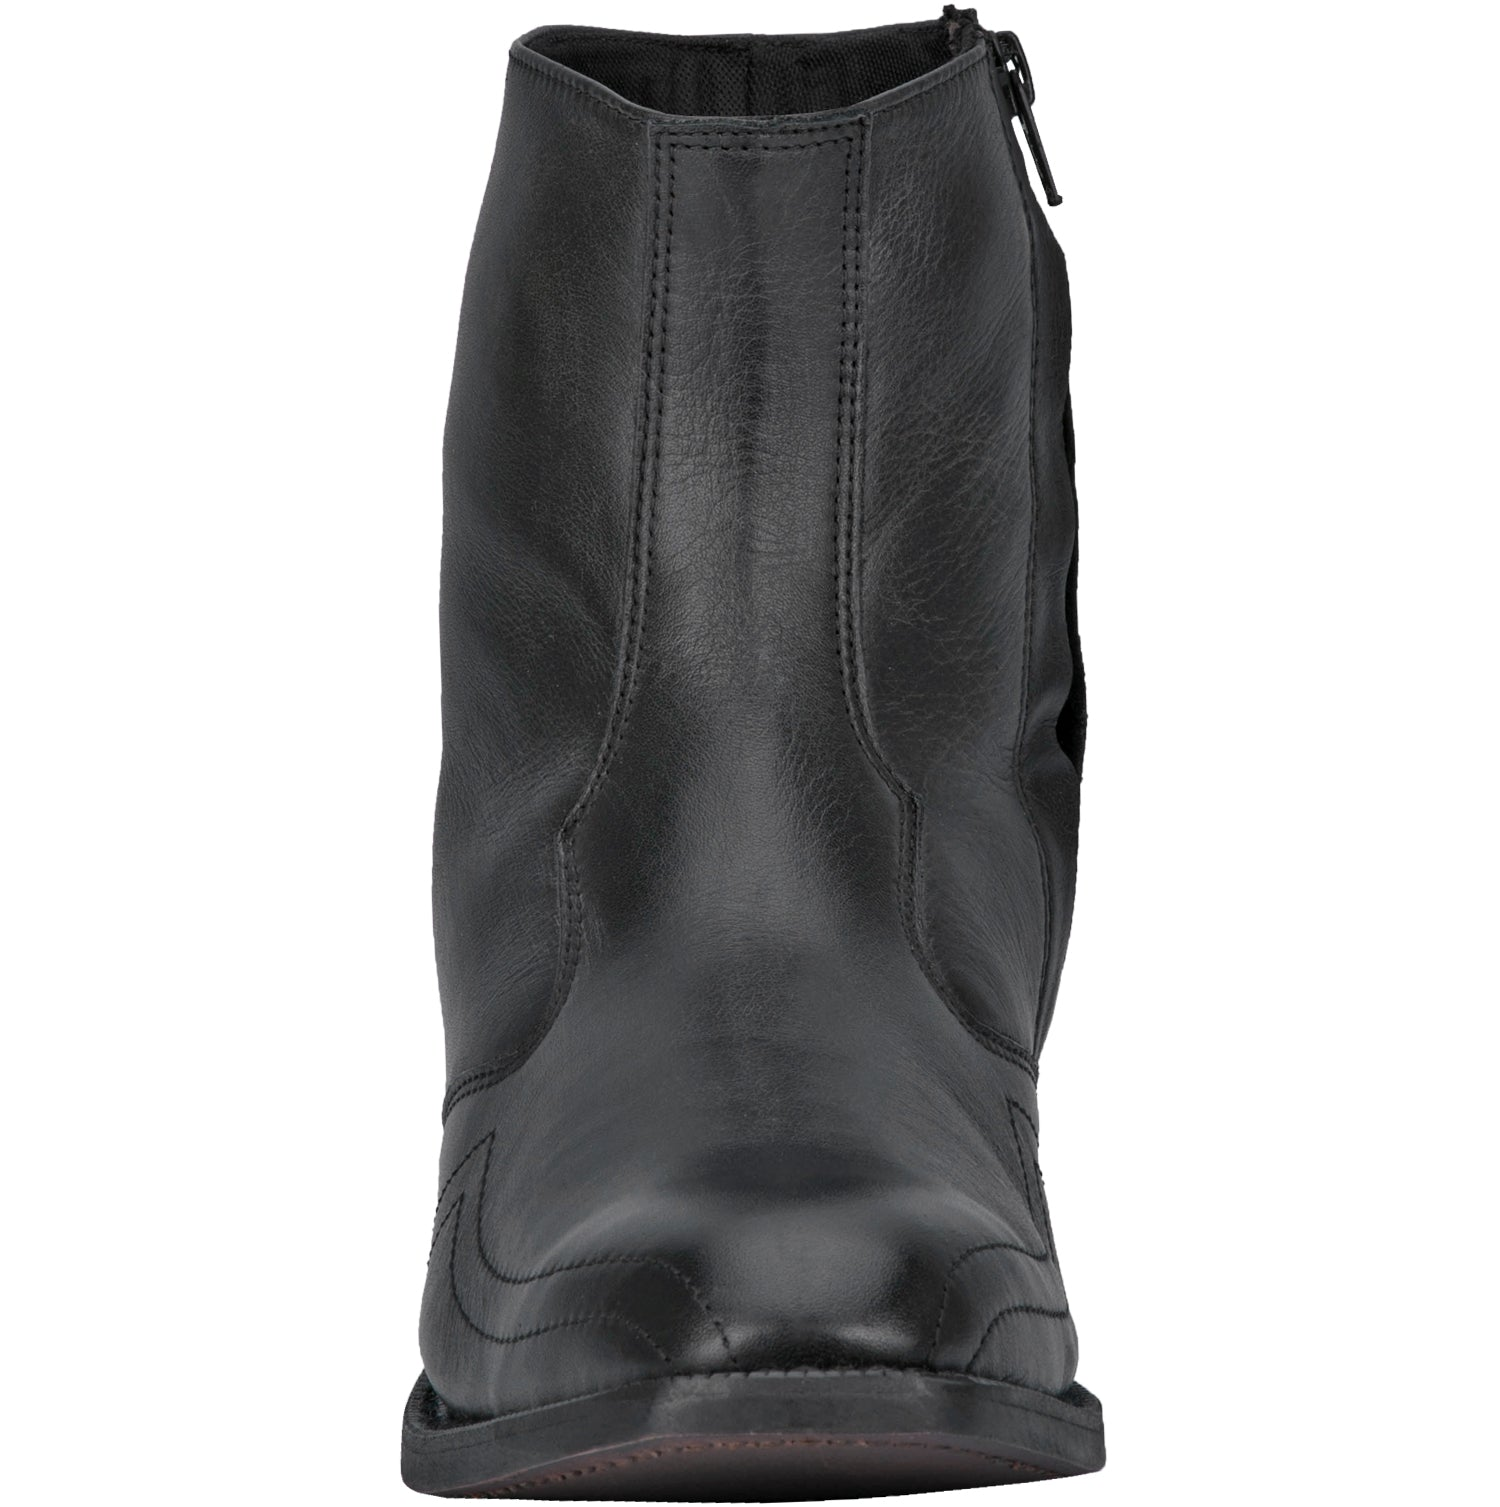 HOXIE LEATHER BOOT 4196605132842